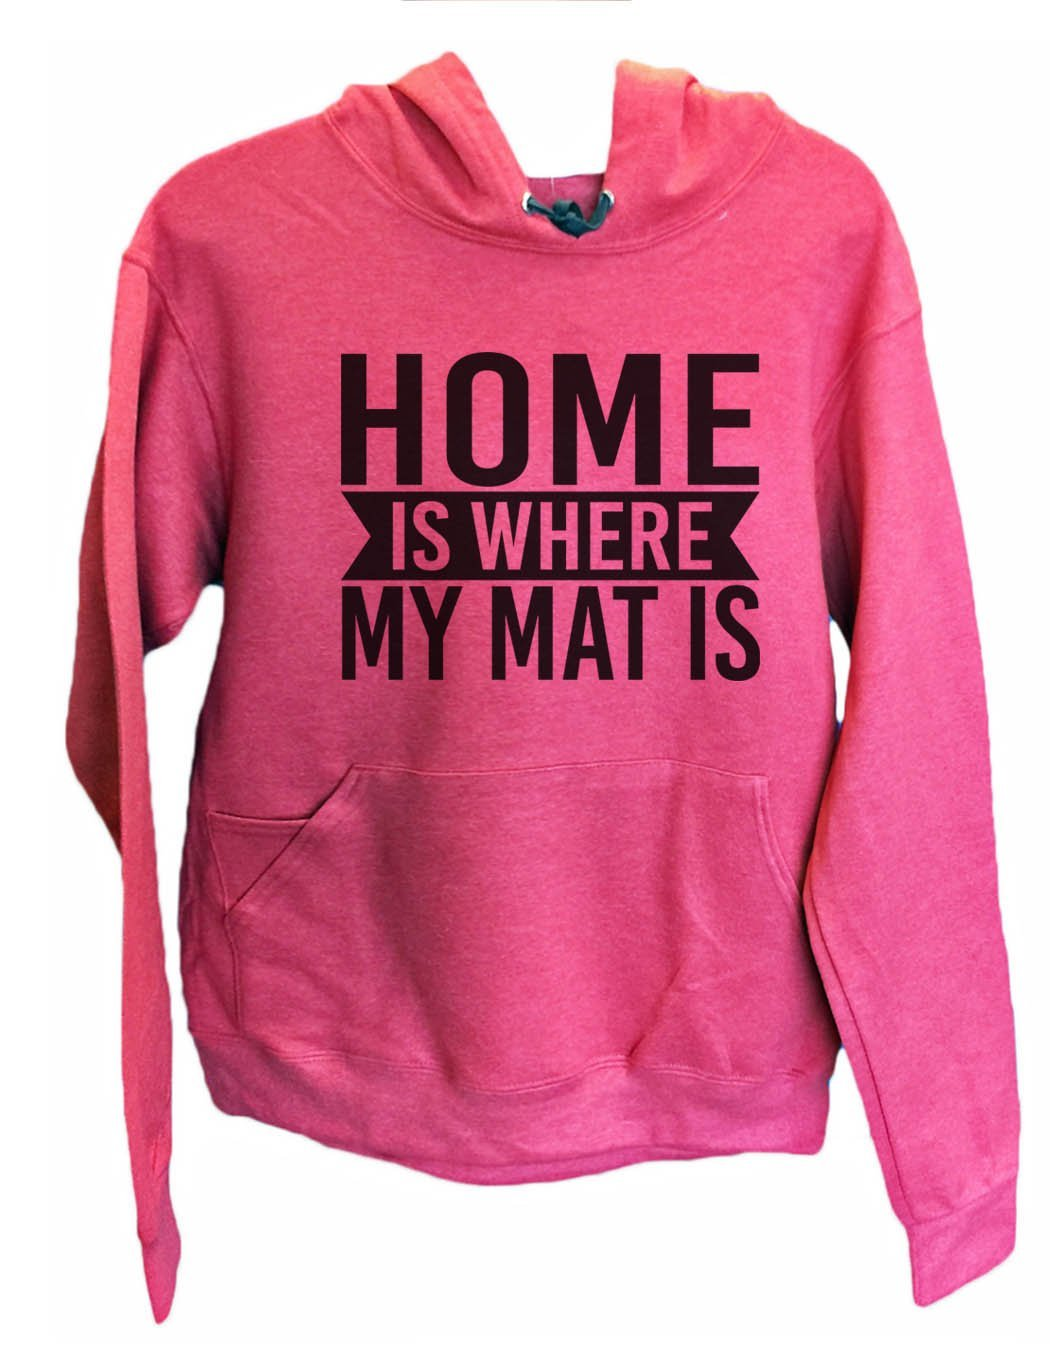 UNISEX HOODIE - Home Is Where My Mat Is - FUNNY MENS AND WOMENS HOODED SWEATSHIRTS - 2132 Funny Shirt Small / Cranberry Red